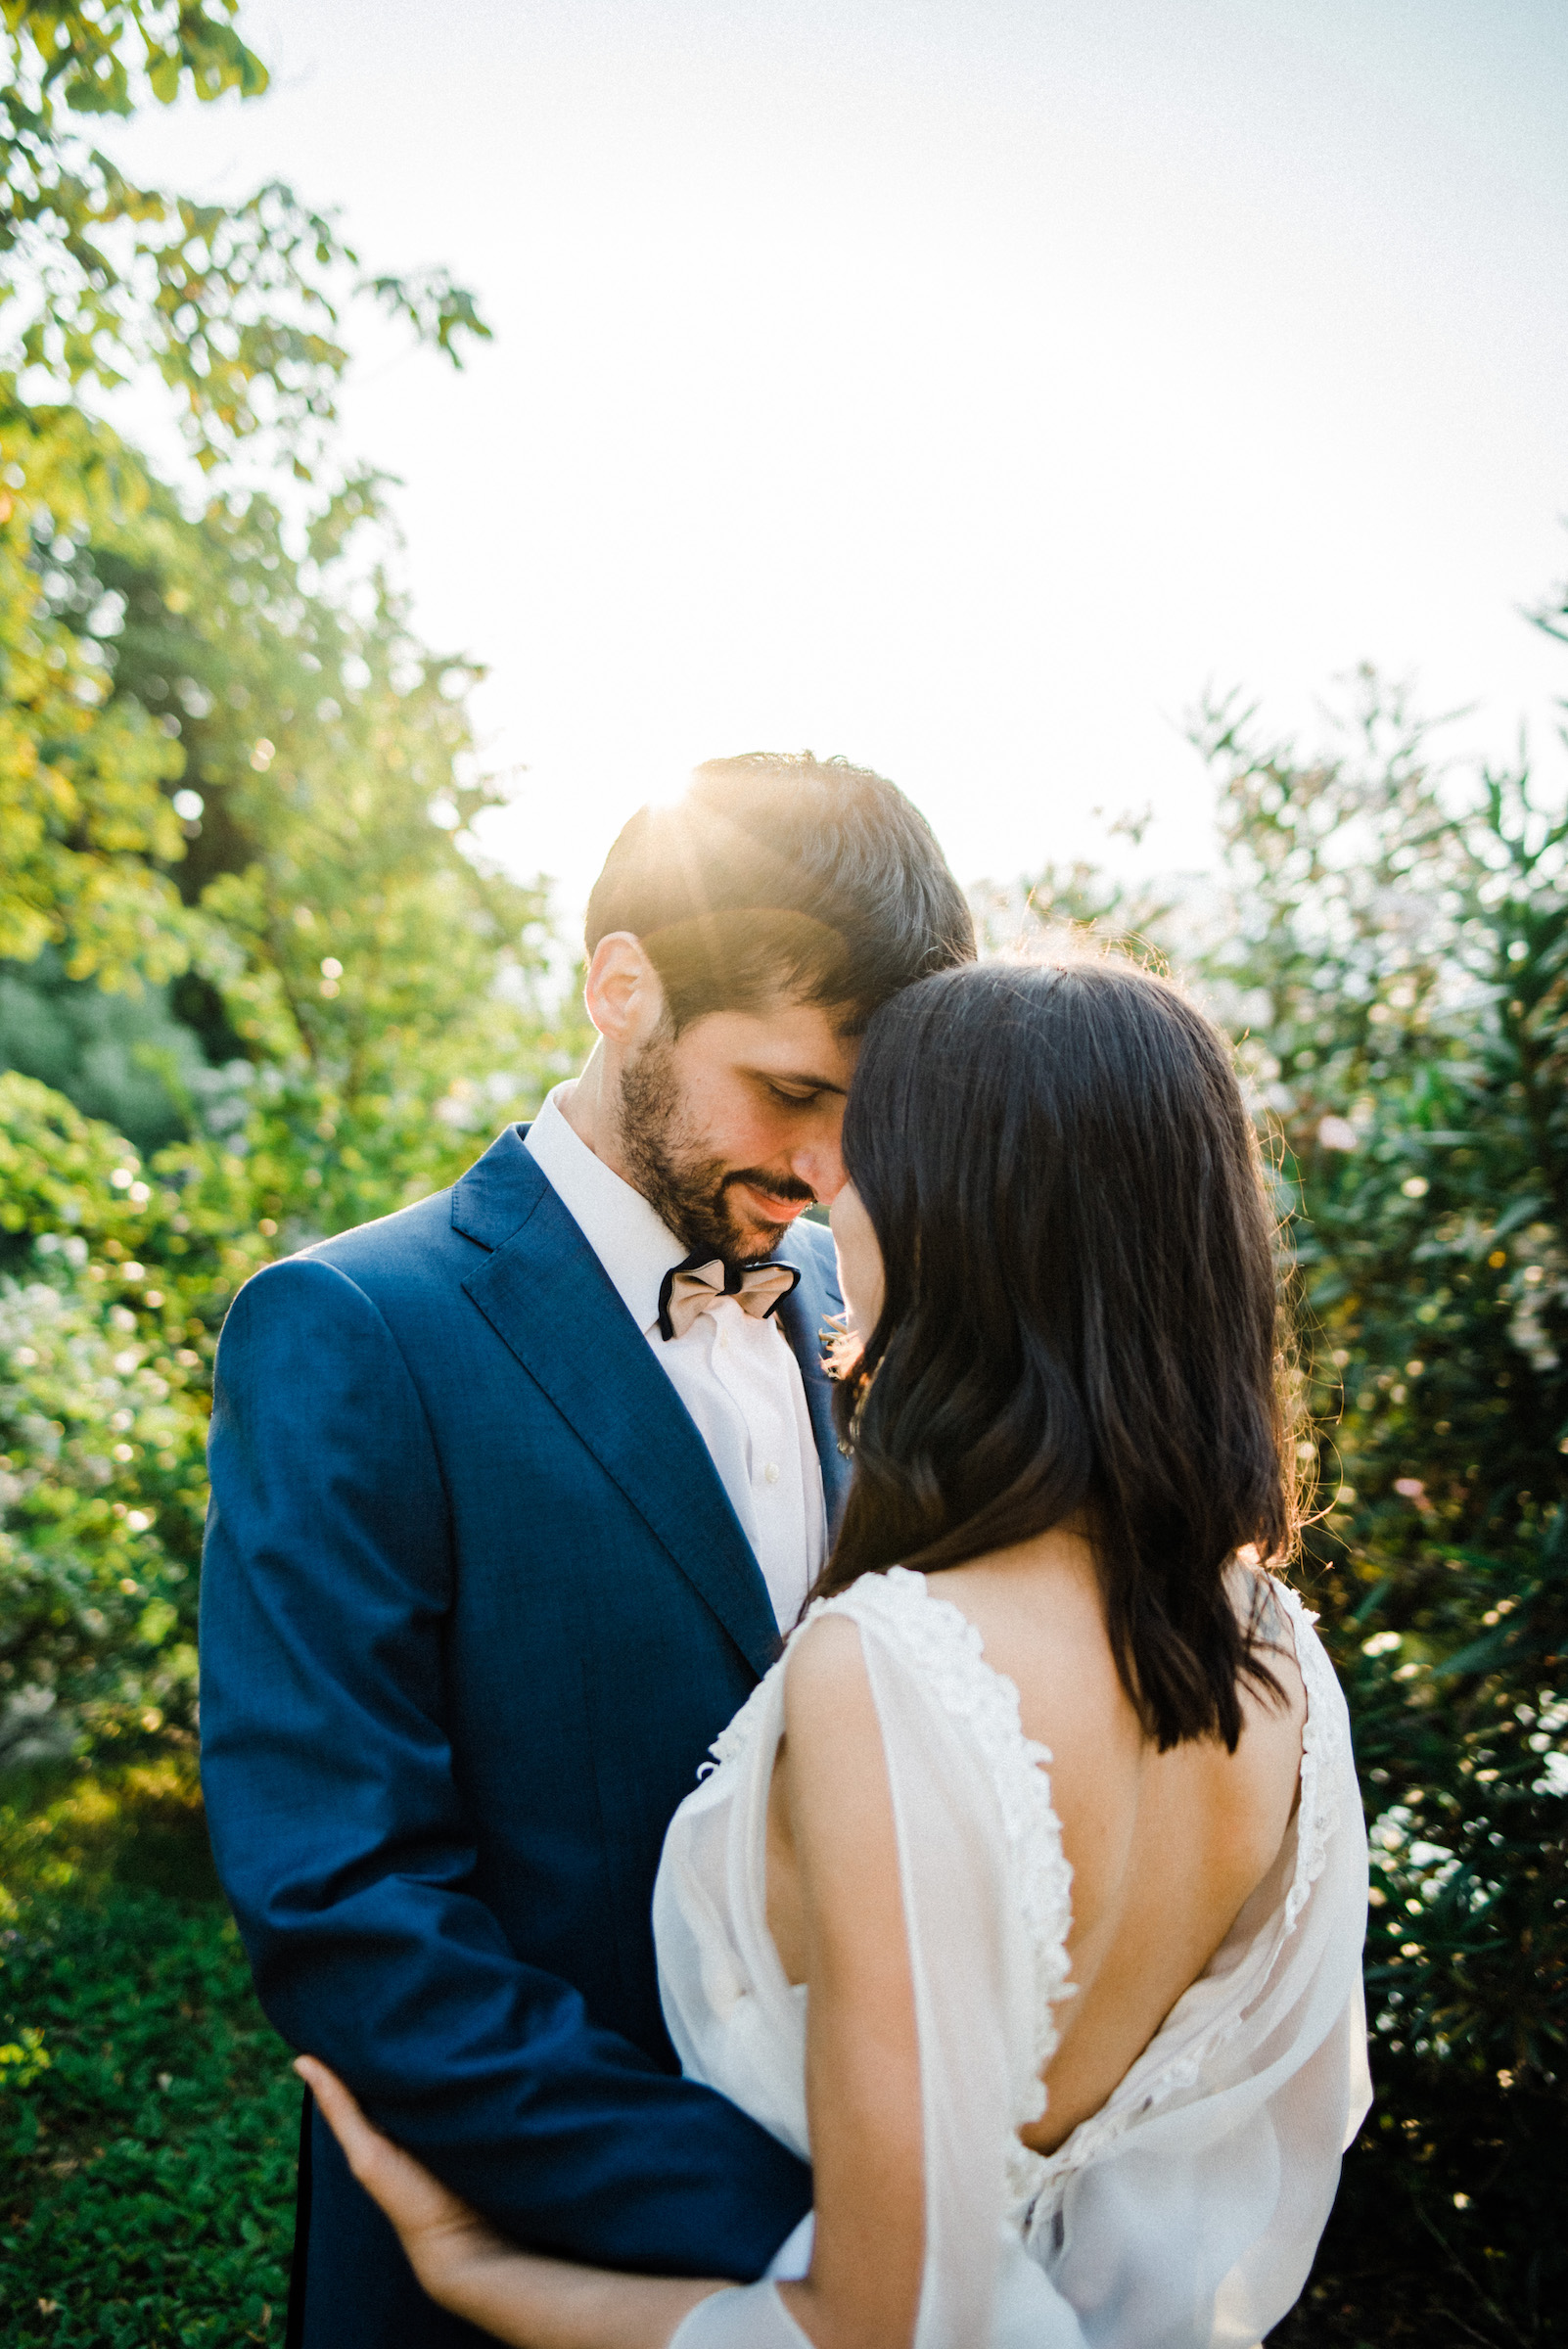 Work of an Authentic and Warm Italian Wedding Photographer, featuring a couple standing together, touching foreheads, during their Bohemian Italian Elopement